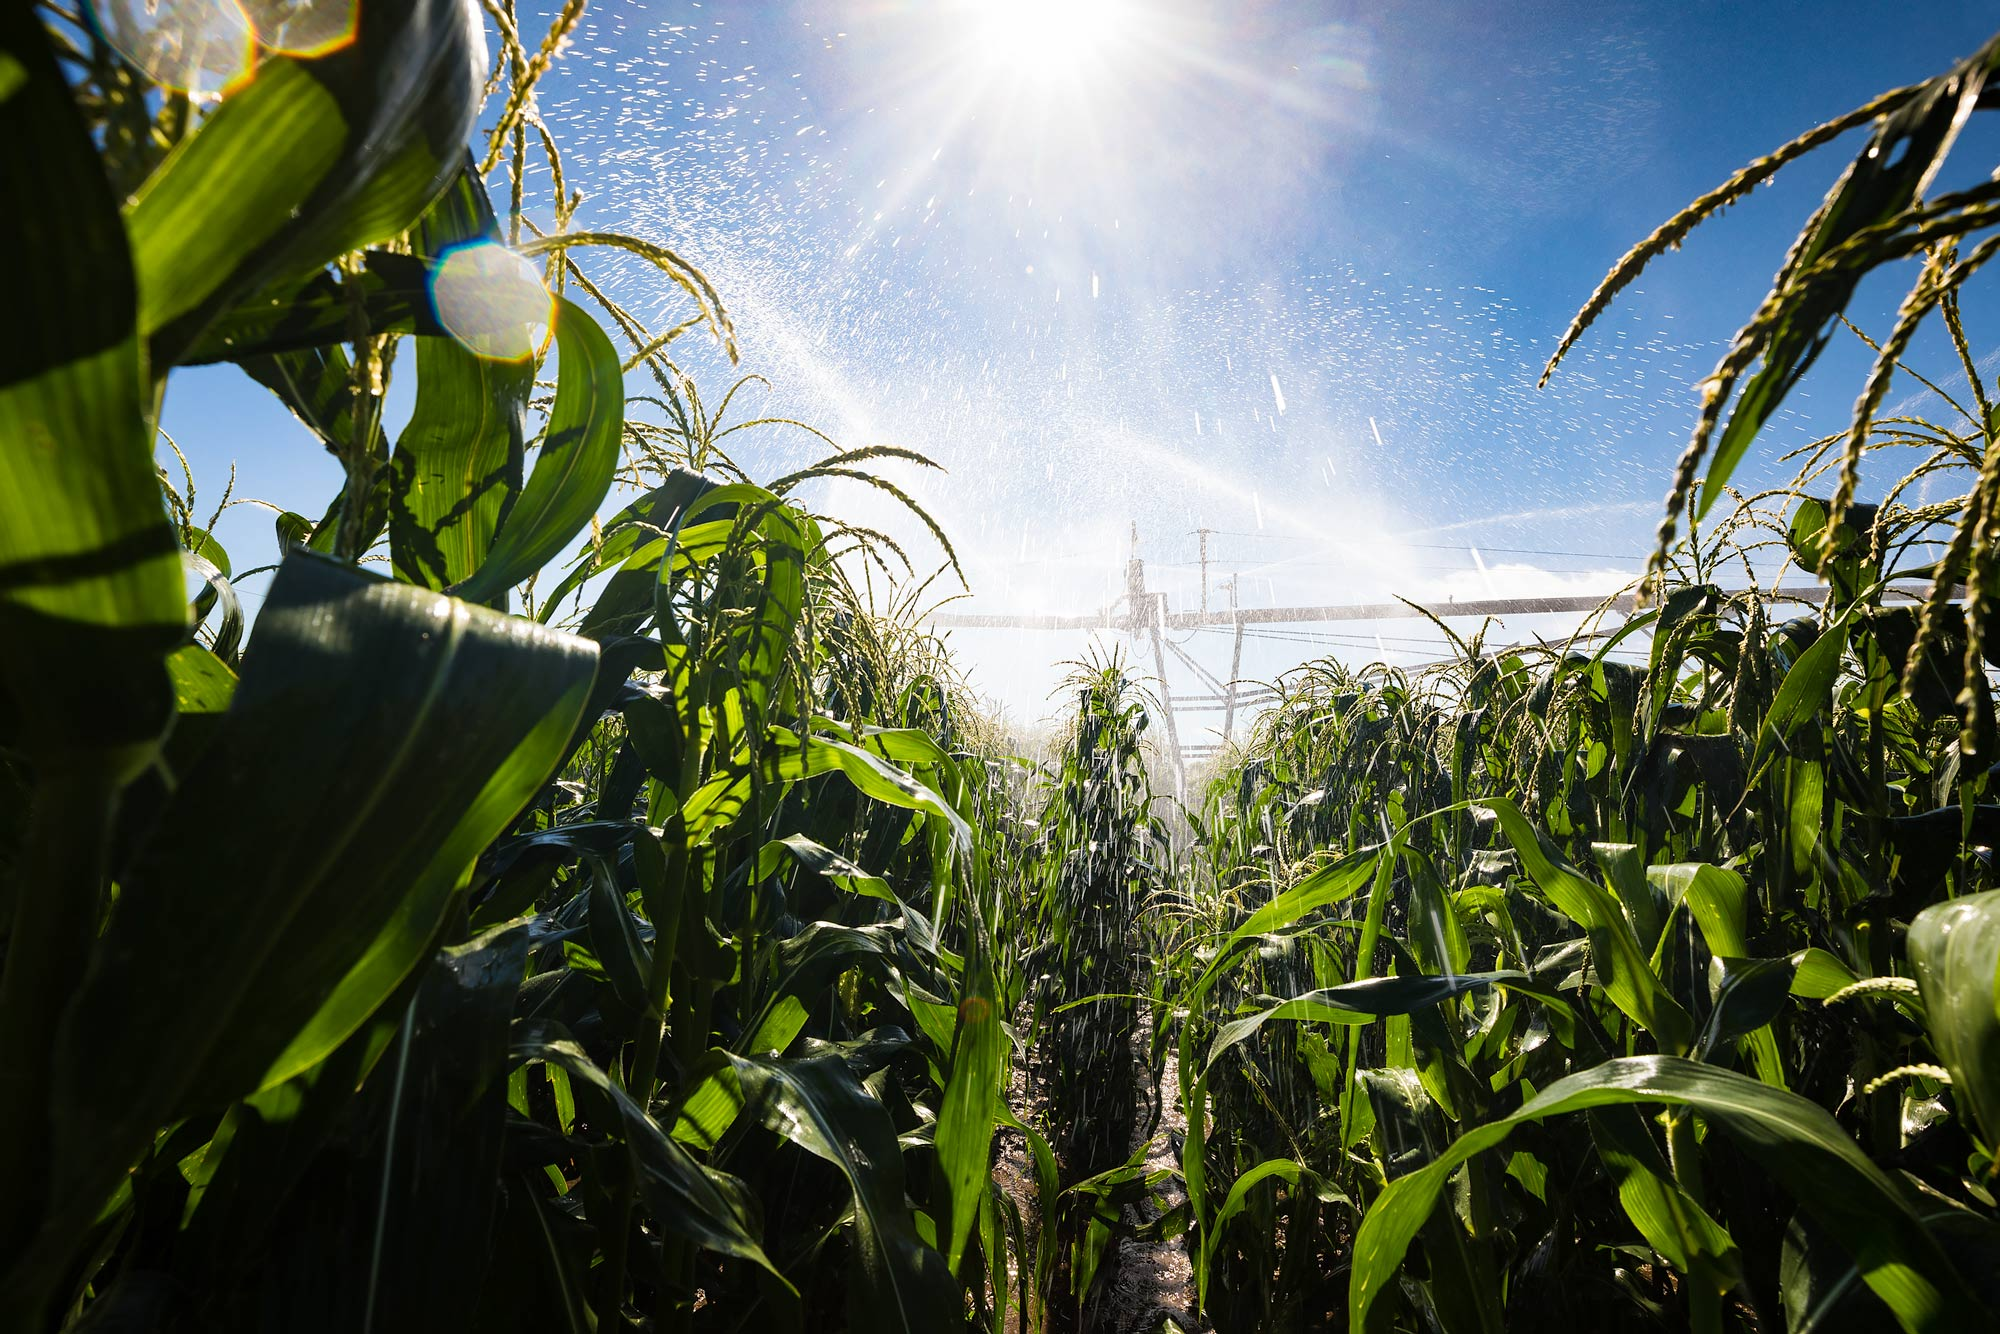 Linear irrigation system watering corn | Scott Gable industrial photographer